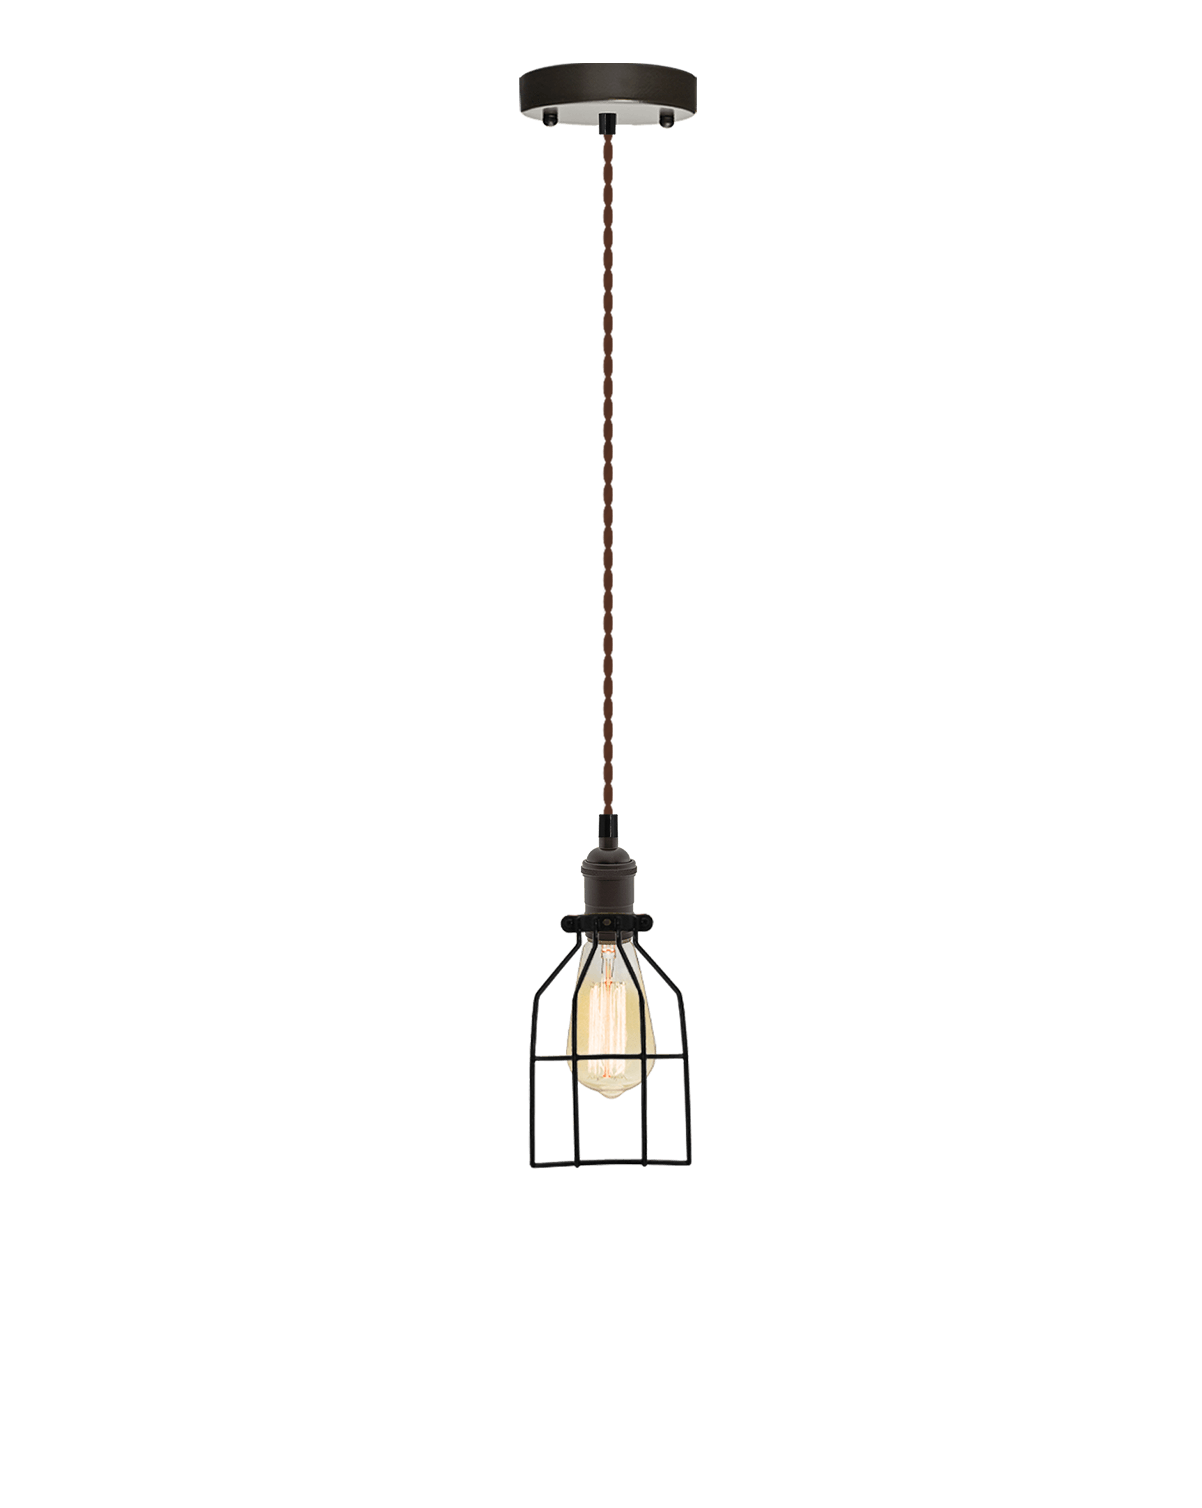 Single Pendant: Brown Twisted and Round Cage Hangout Lighting